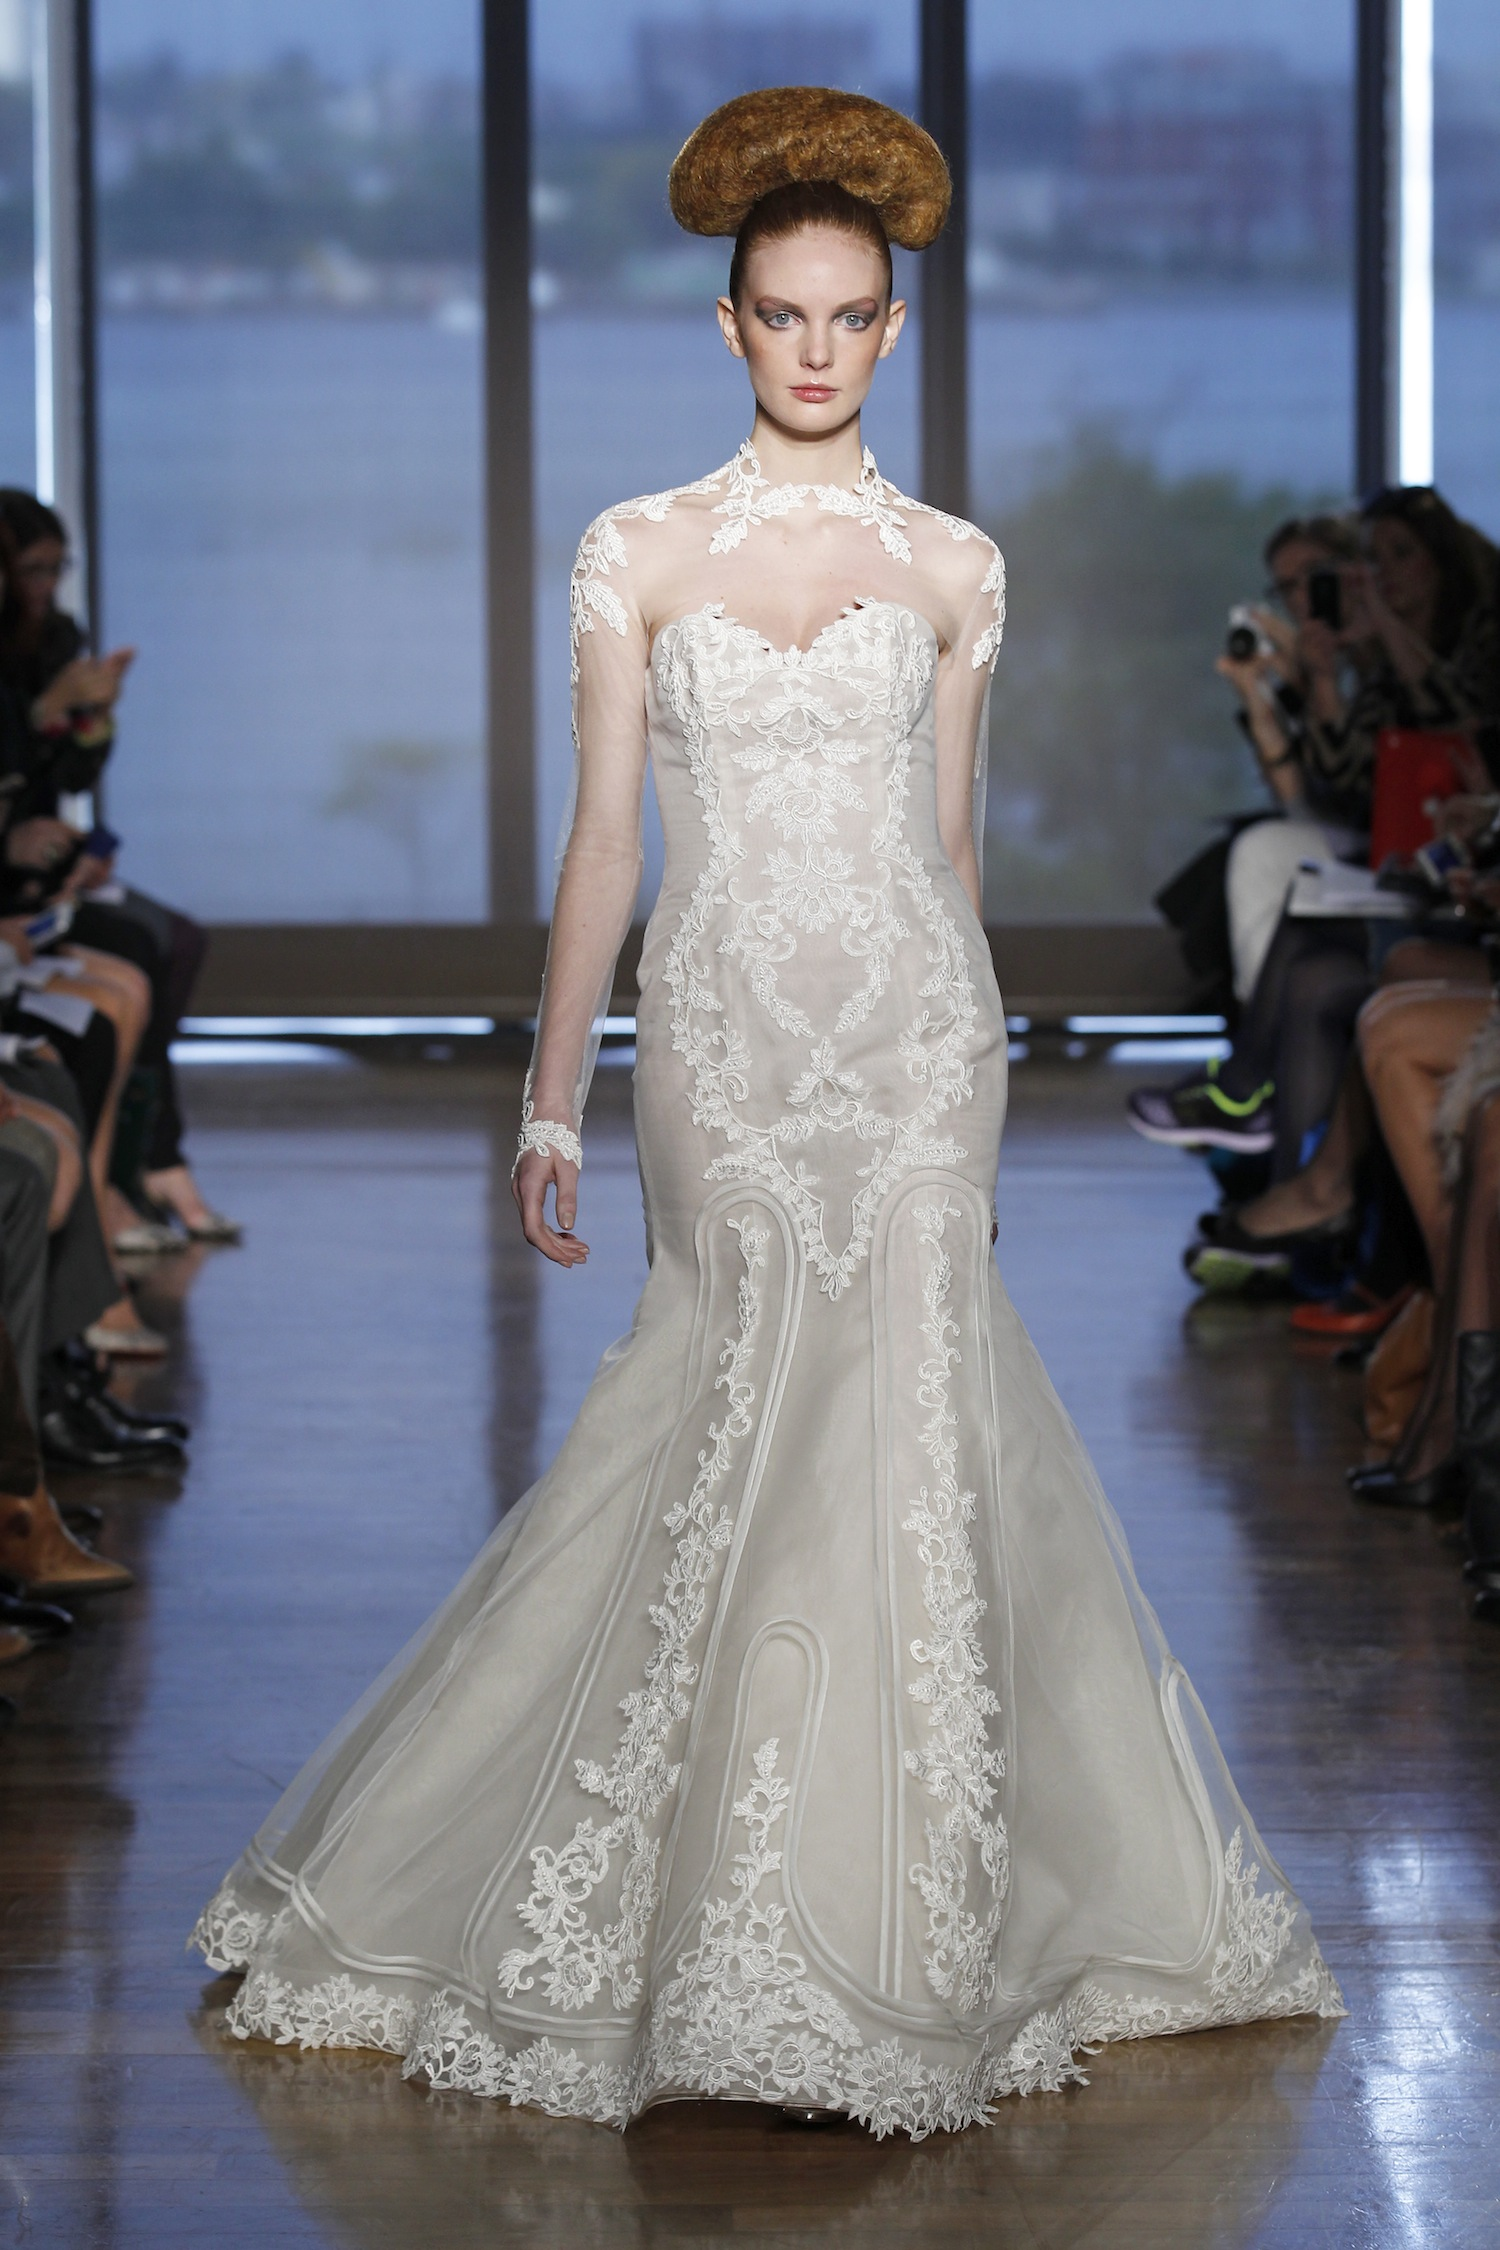 Helene by ines di santo 2014 couture collection for Ines di santo wedding dress